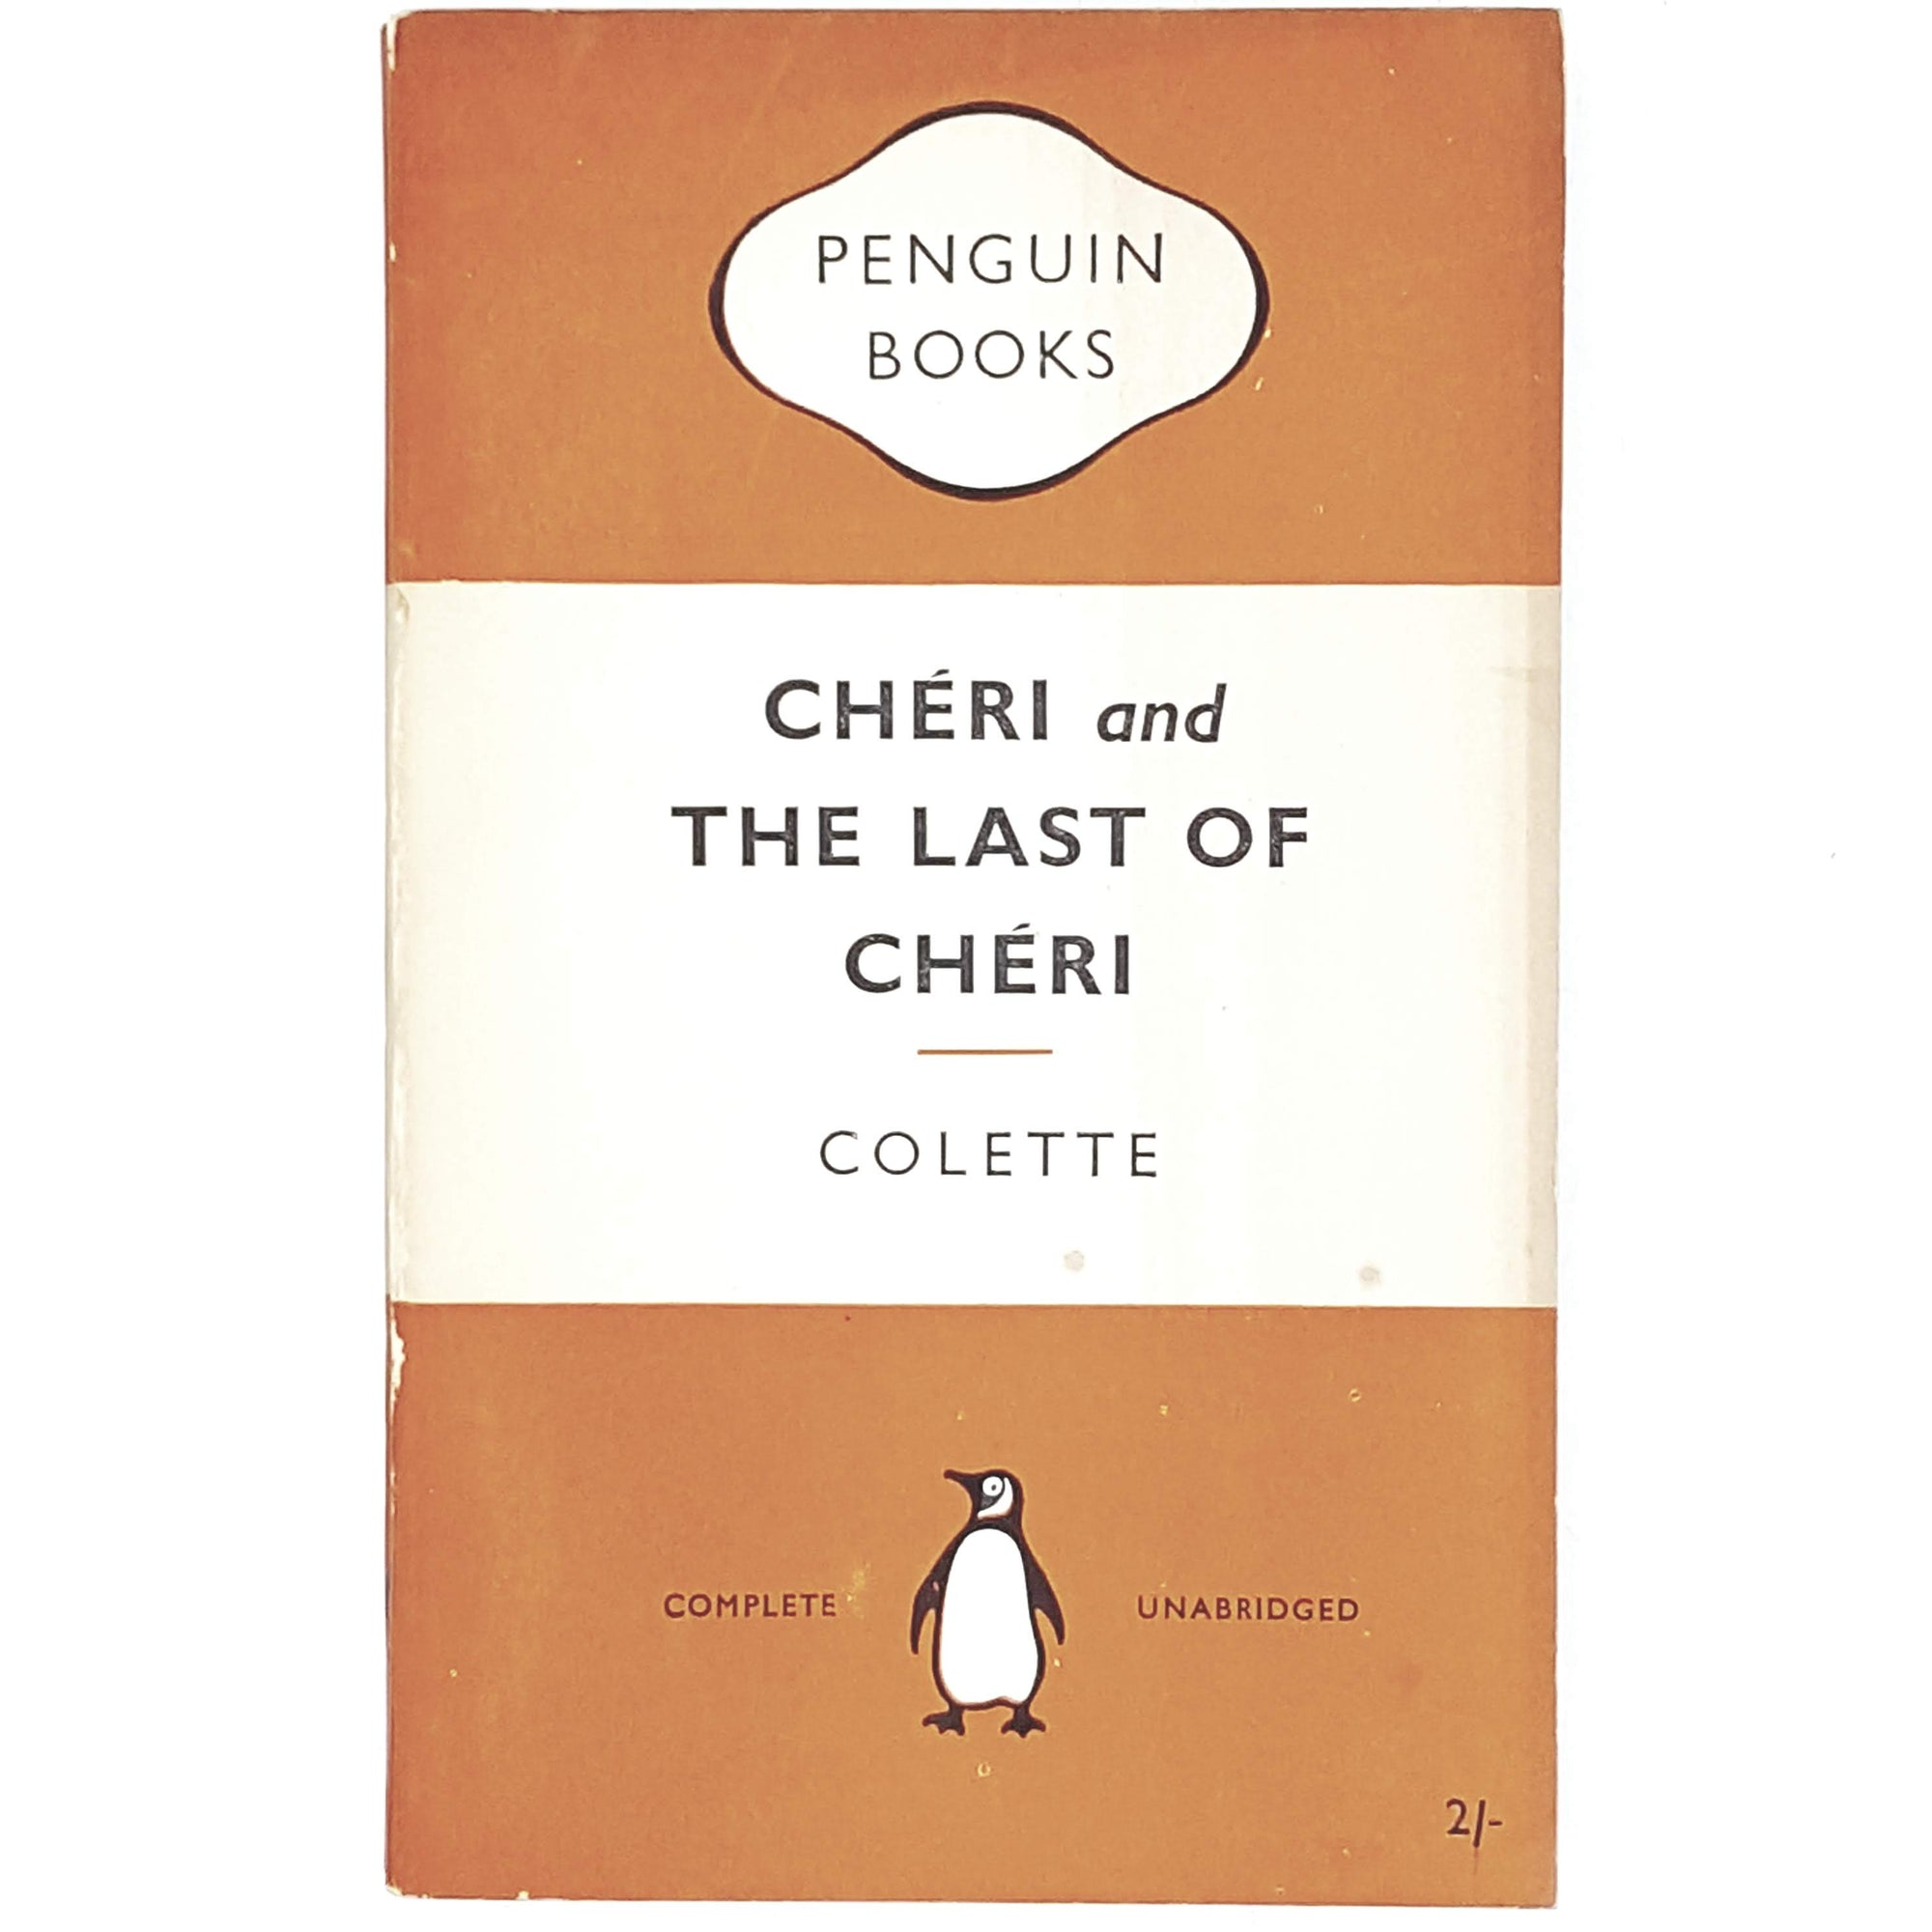 First Edition Colette's Chéri and The Last of Chéri 1954